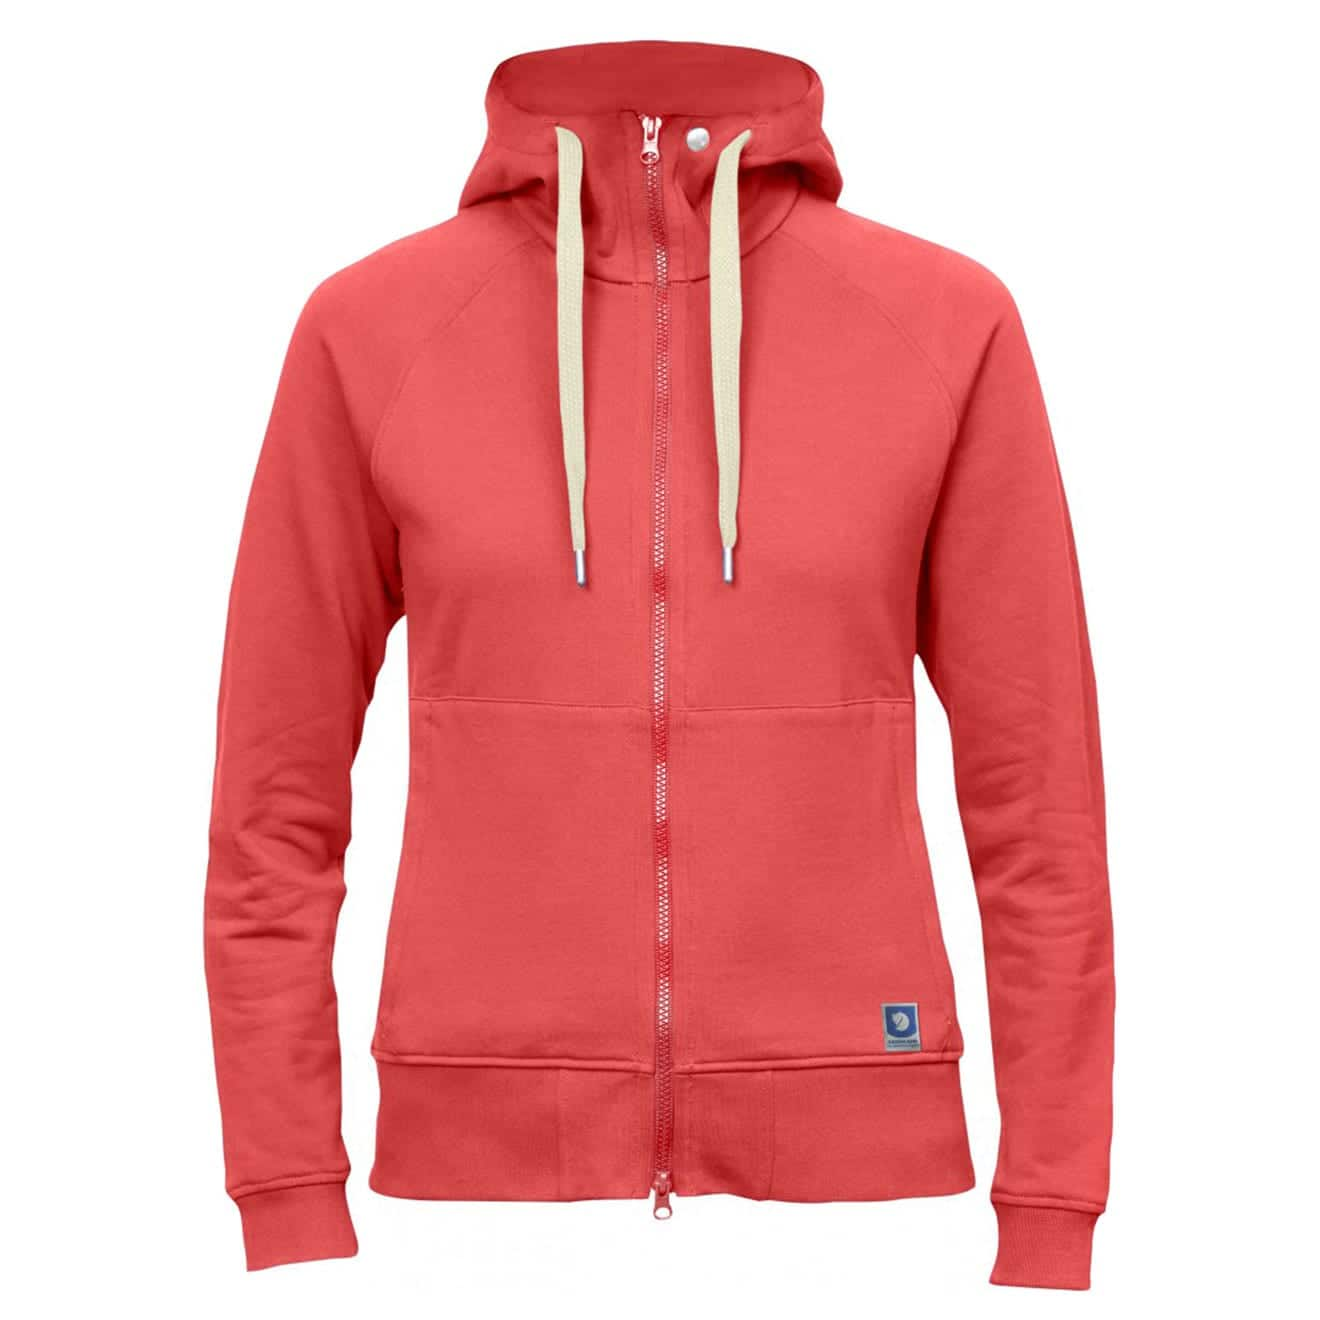 buying now hot product professional sale Fjallraven Womens Greenland Zip Hoodie Peach Pink